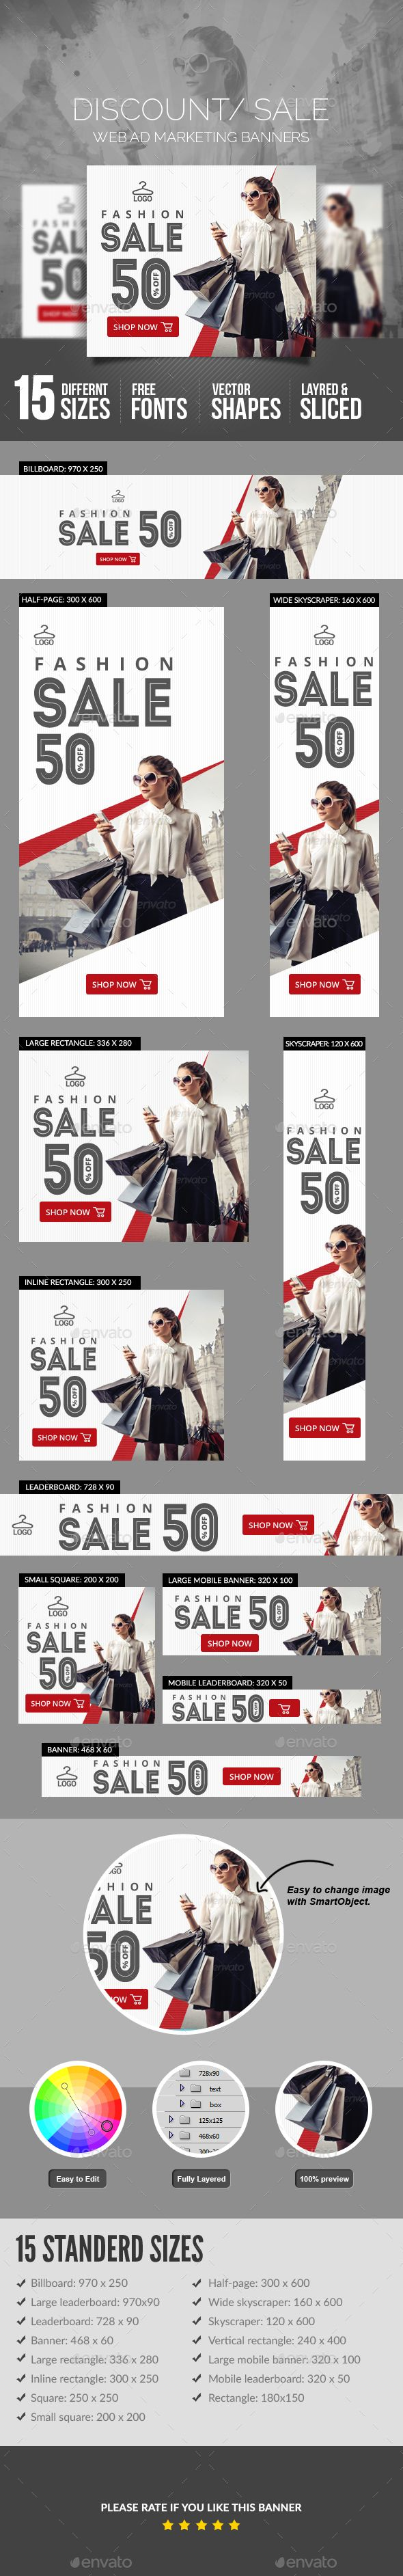 Fashion Sales Banners Ads Design Template - Banners & Ads Web Elements Design Template PSD. Download here: https://graphicriver.net/item/sales-banners/18936823?ref=yinkira